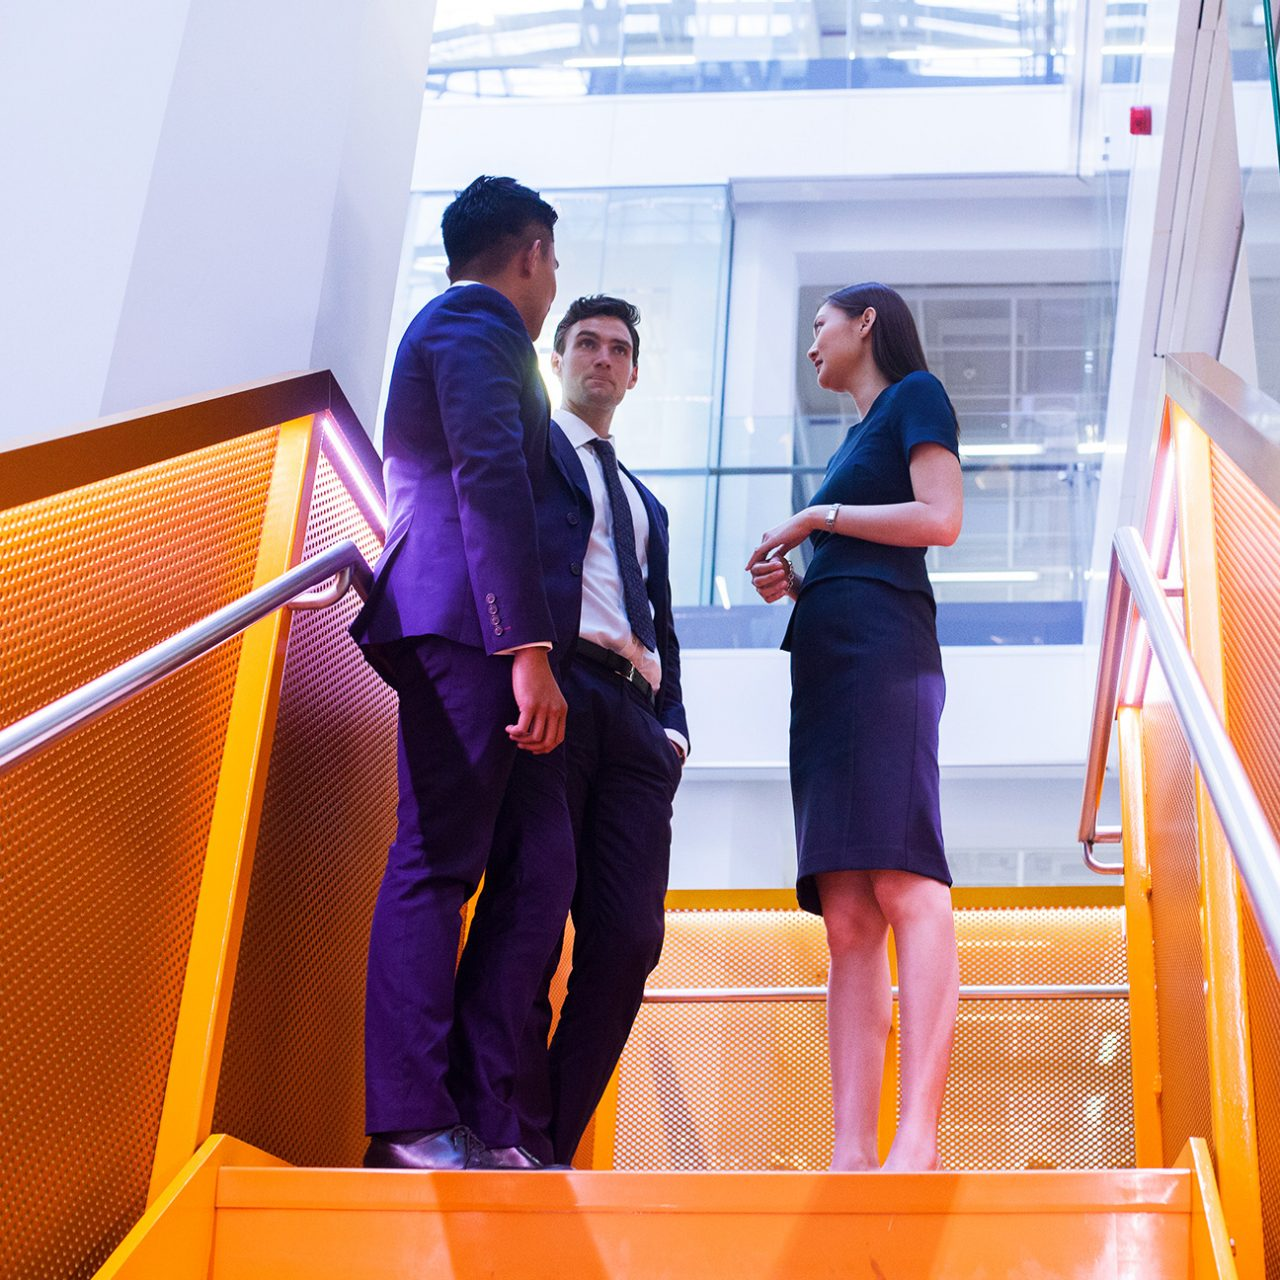 People meeting on the stairs at 50 Martin Place, Sydney office